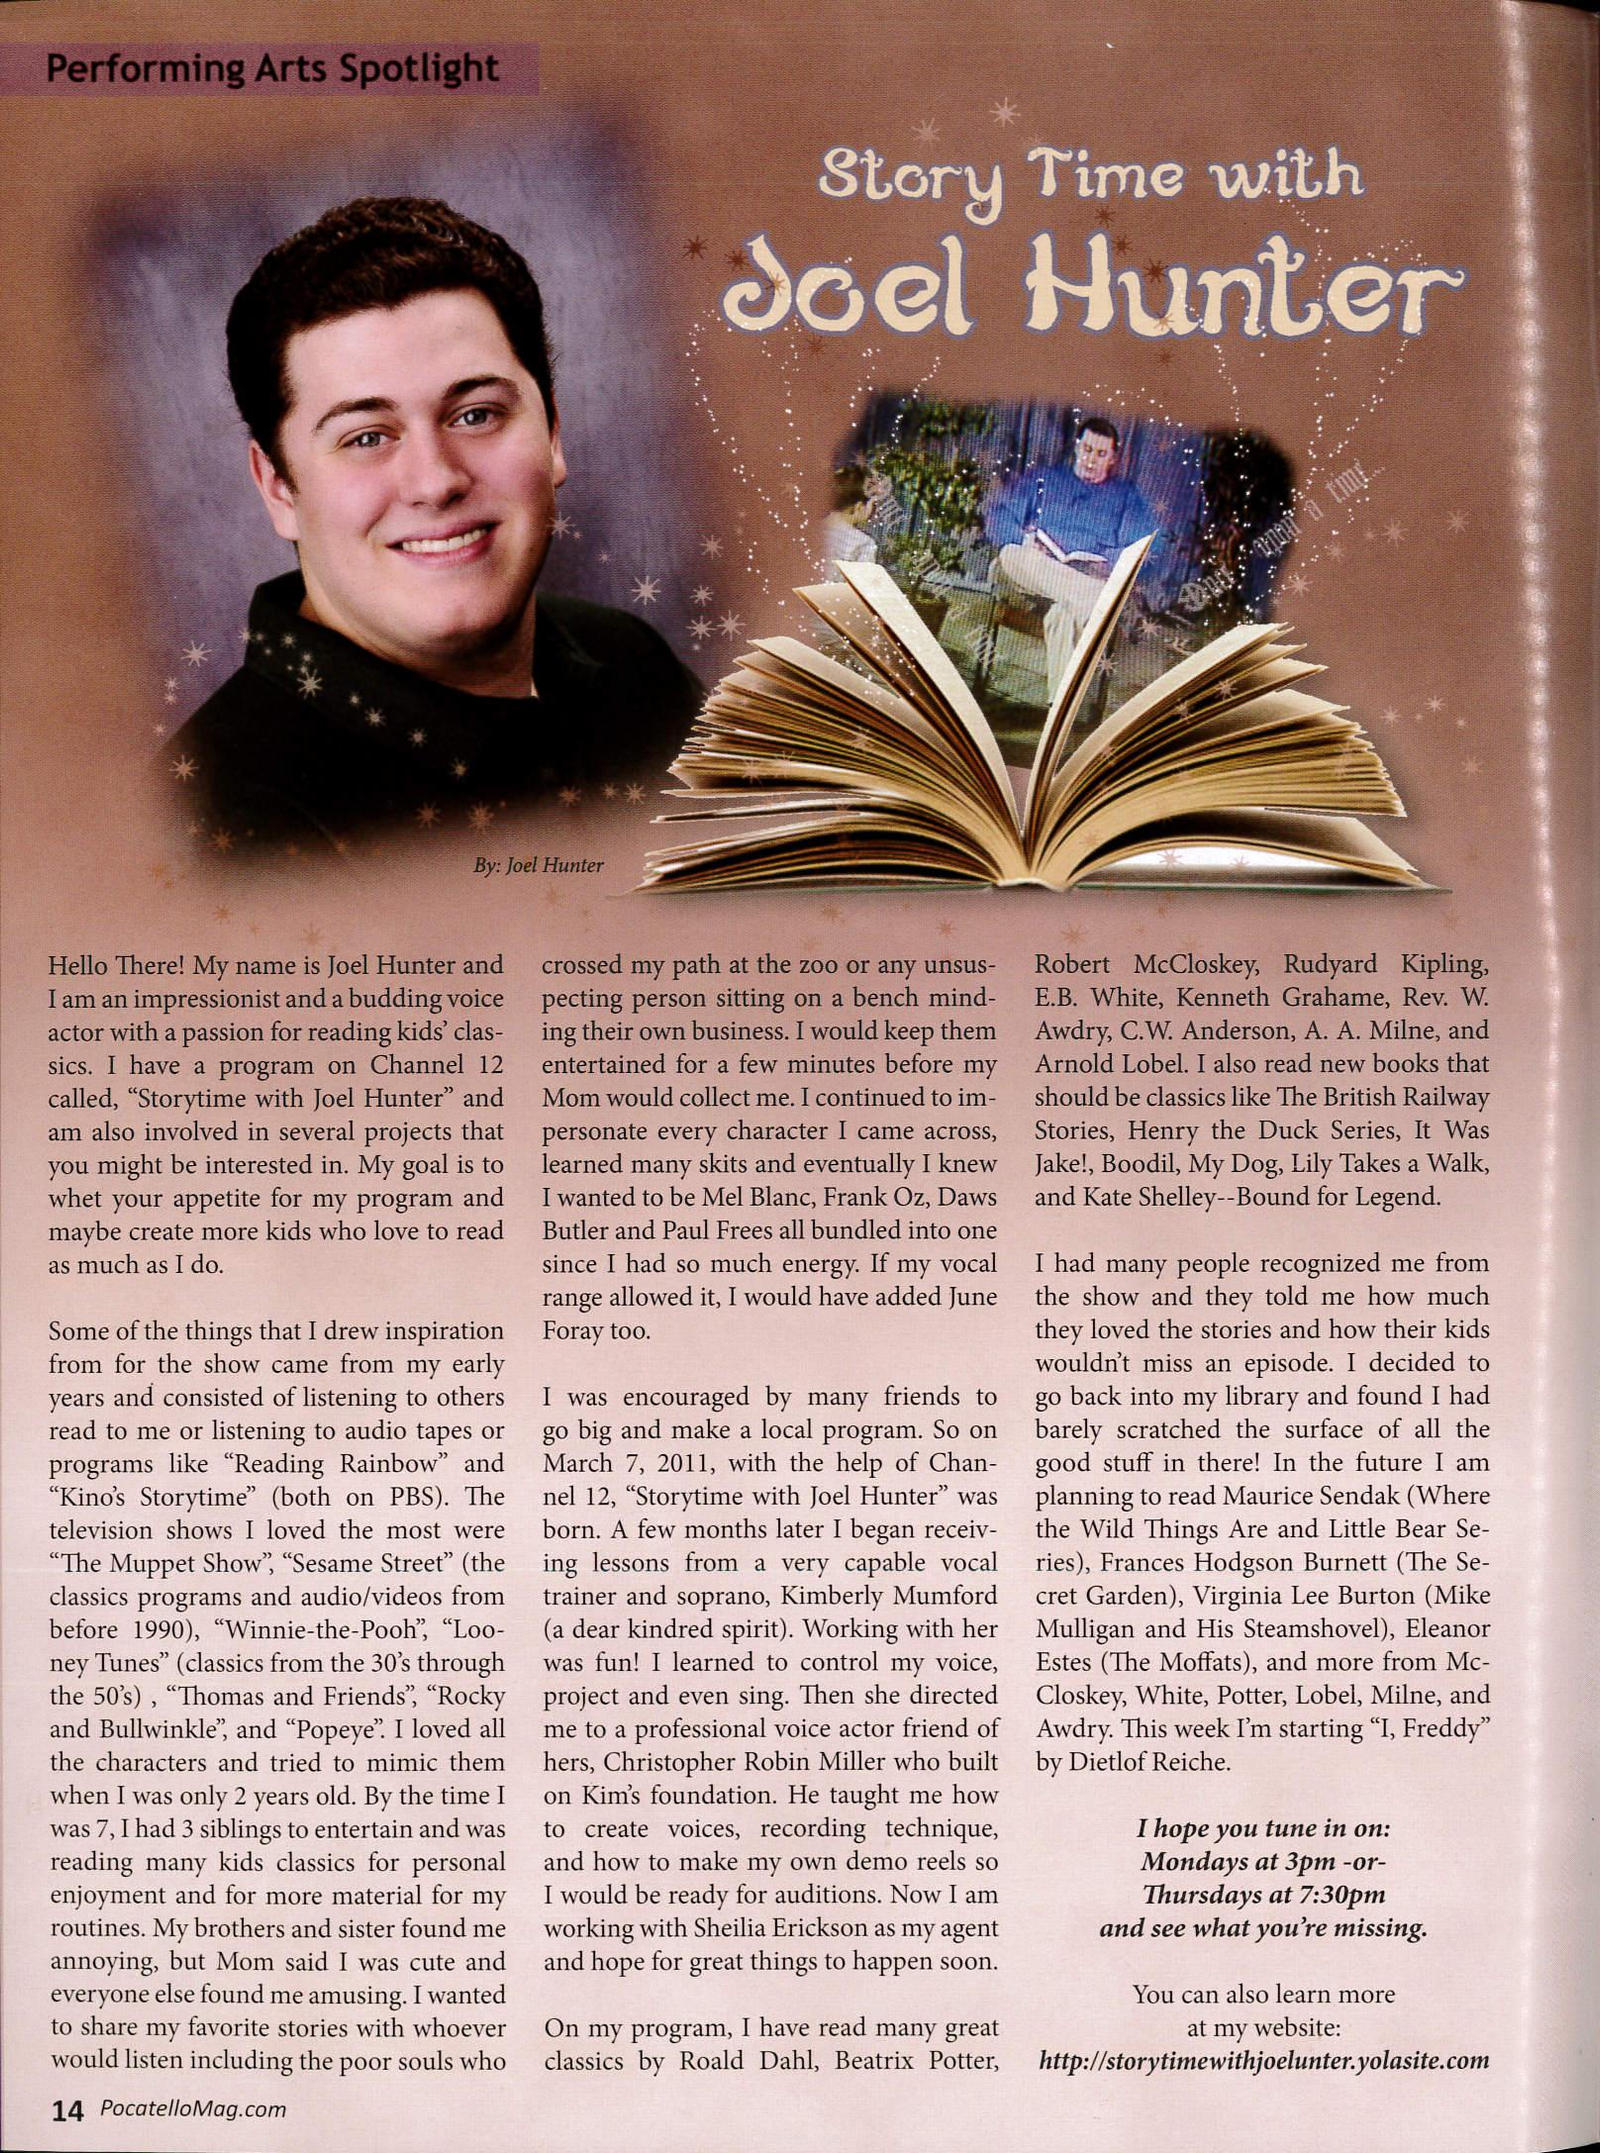 Storytime with Joel Hunter Article